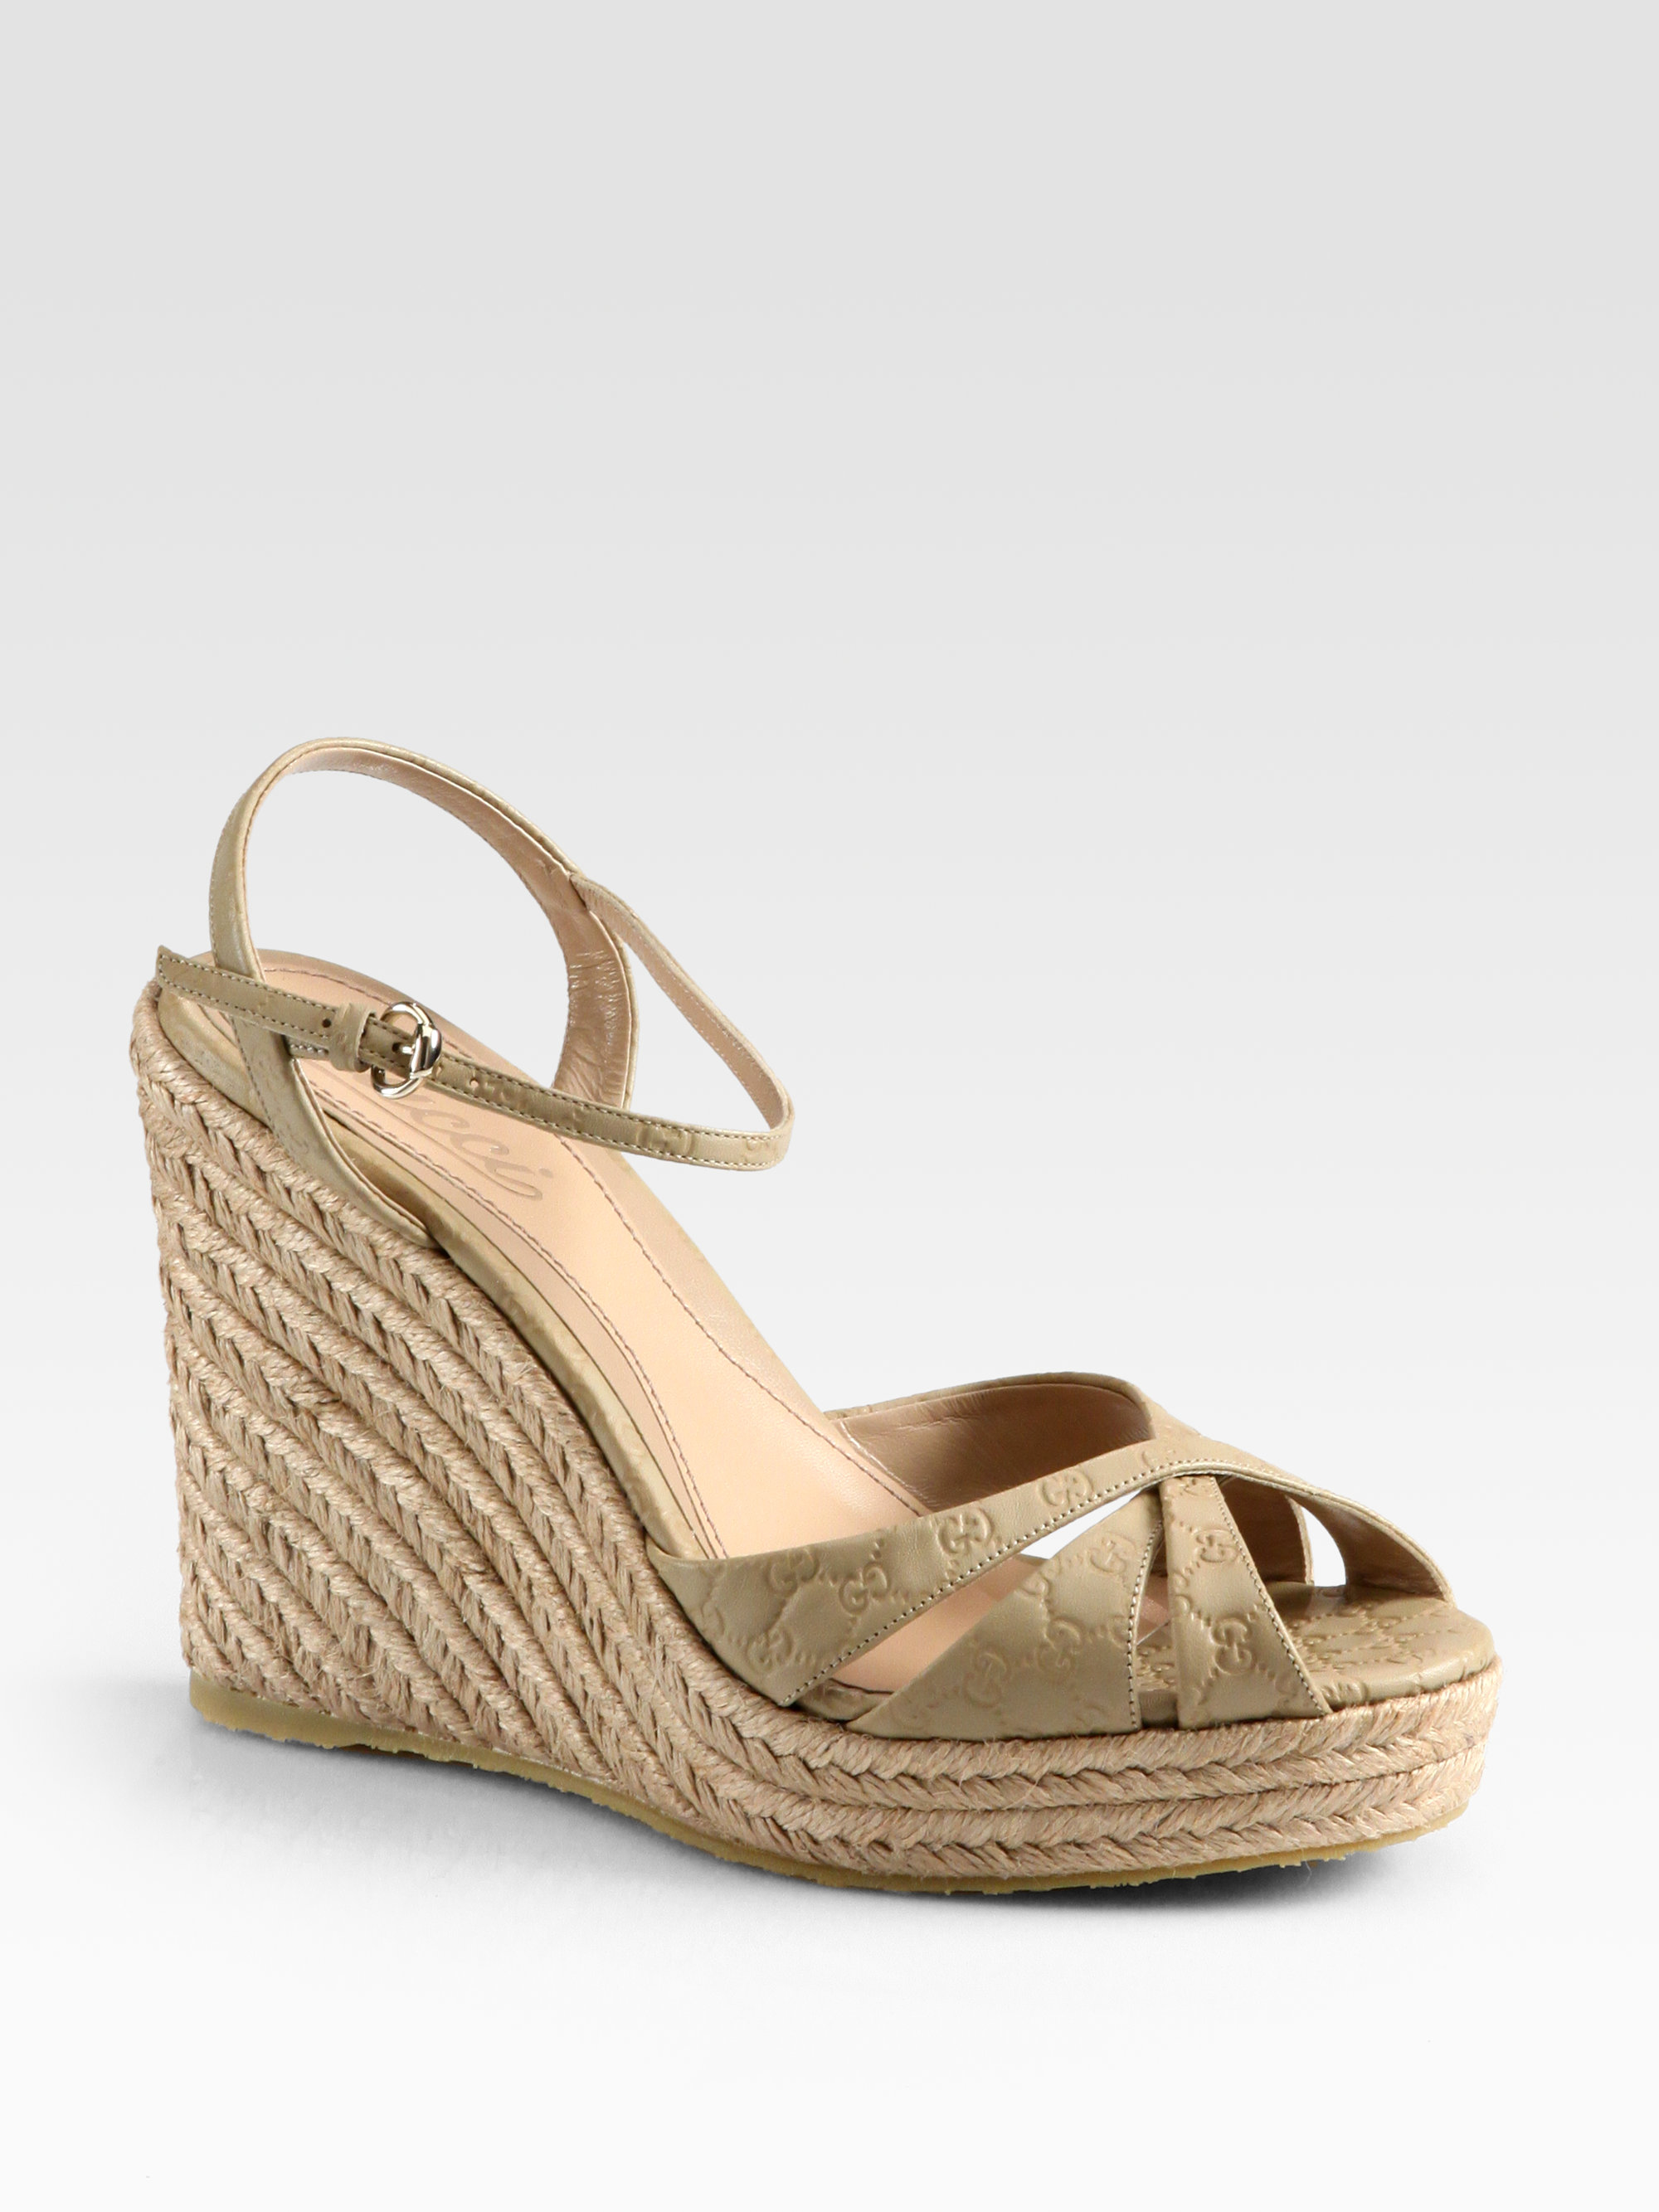 75c4f492858be7 Lyst - Gucci Penelope Gg Leather Espadrille Wedges in Natural